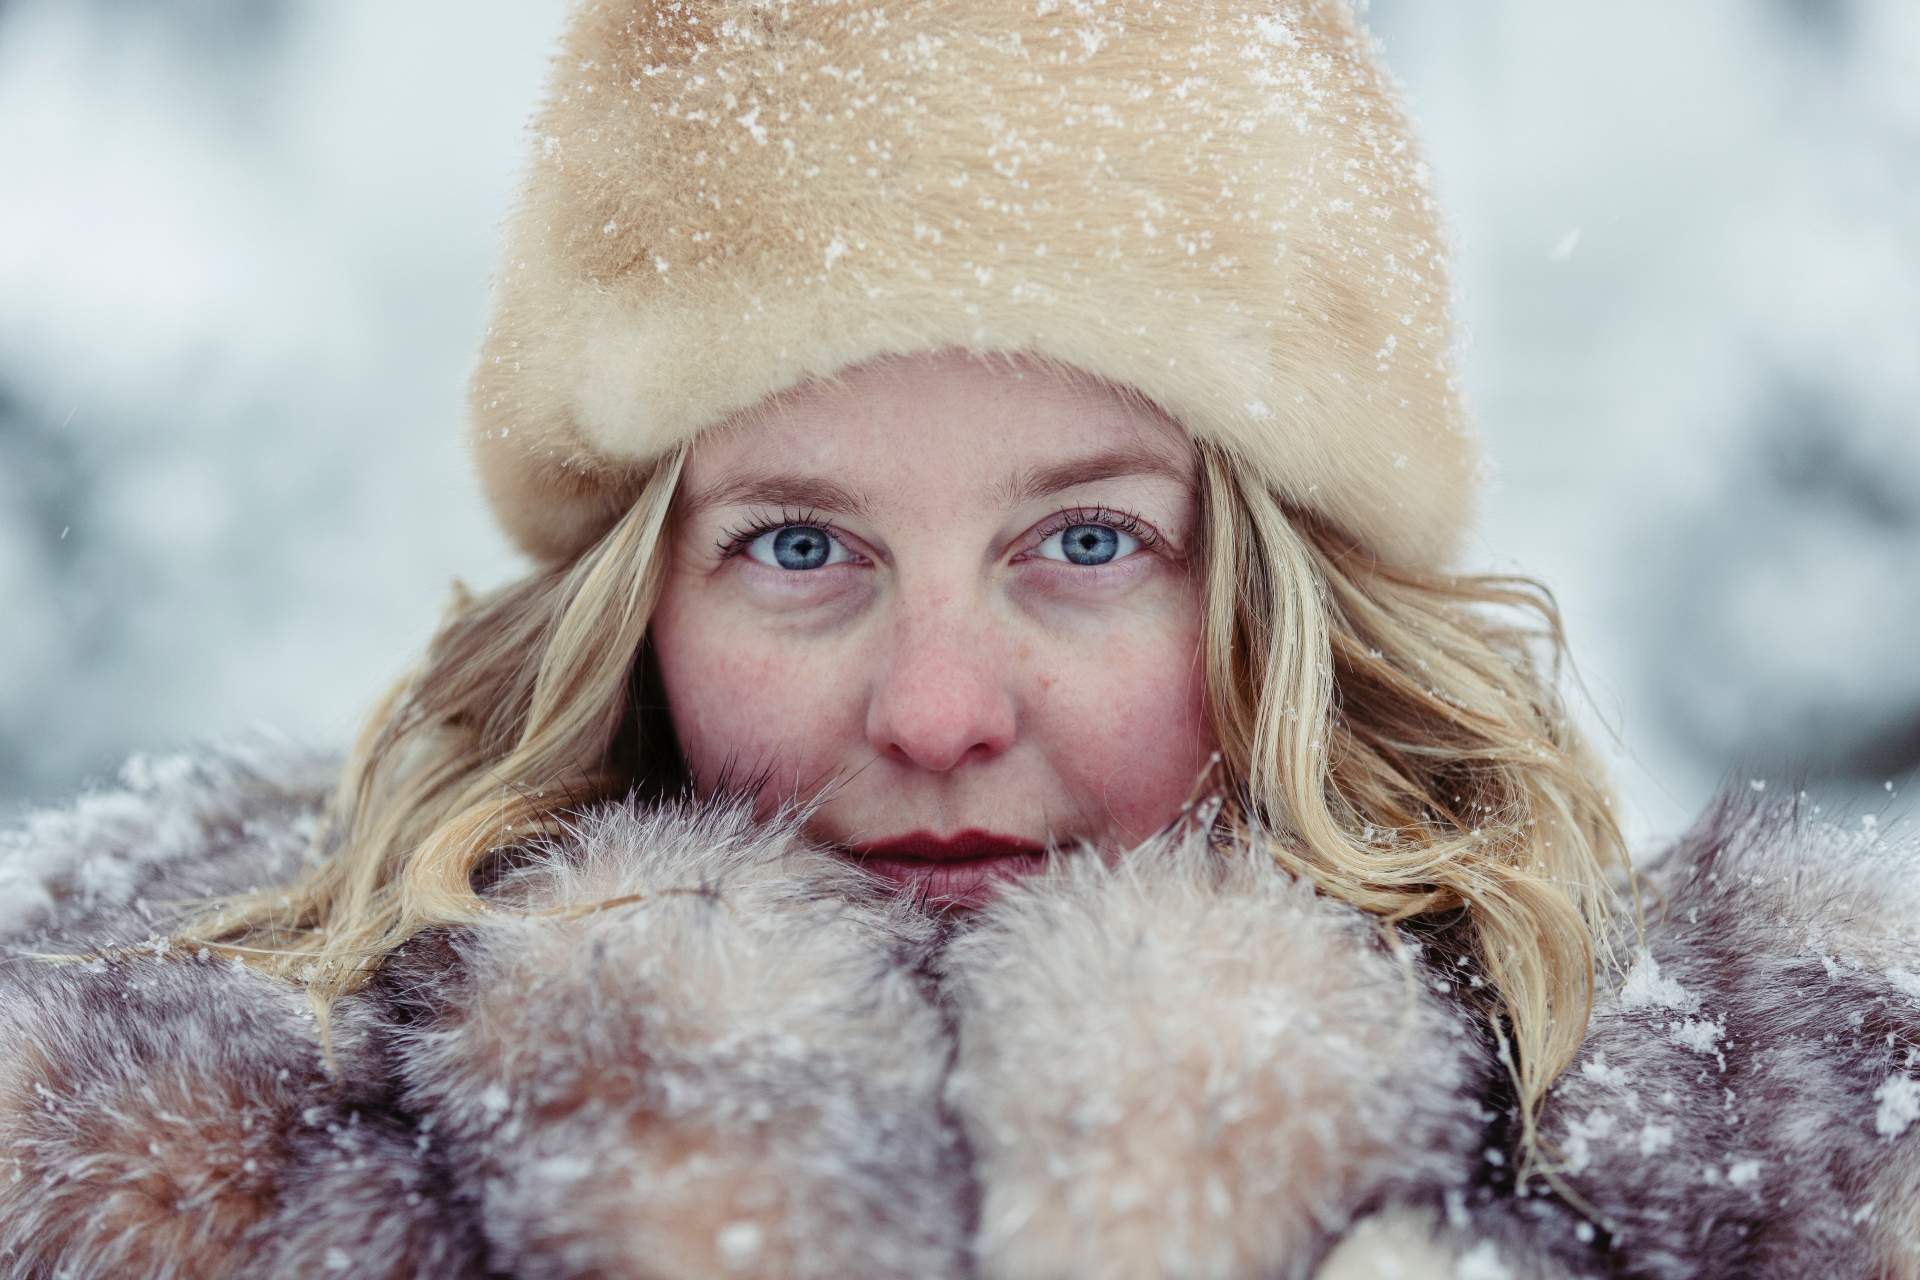 Winter Skin – 3 tips to banish seasonal dryness